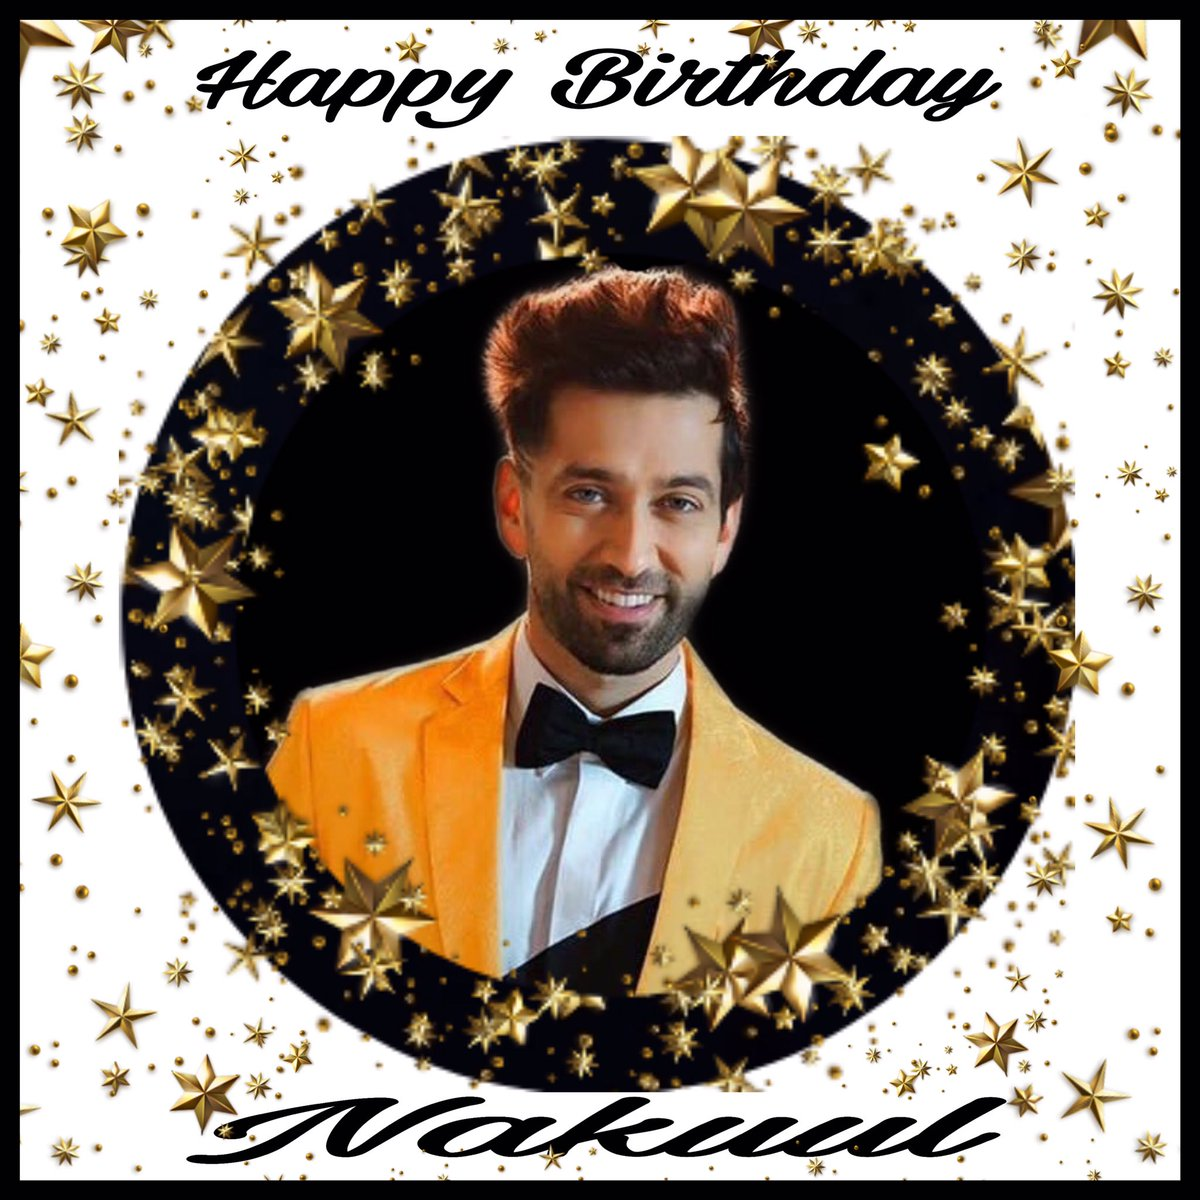 HAPPY BIRTHDAY SUPERSTAR #NakuulMehta !!!!!!! Wishing you a joyous day full of love, laughter and happiness! May this year bless you with all you desire personally and professionally! Love always  #HappyBirthdayNakuul<br>http://pic.twitter.com/KNazd5TZaw